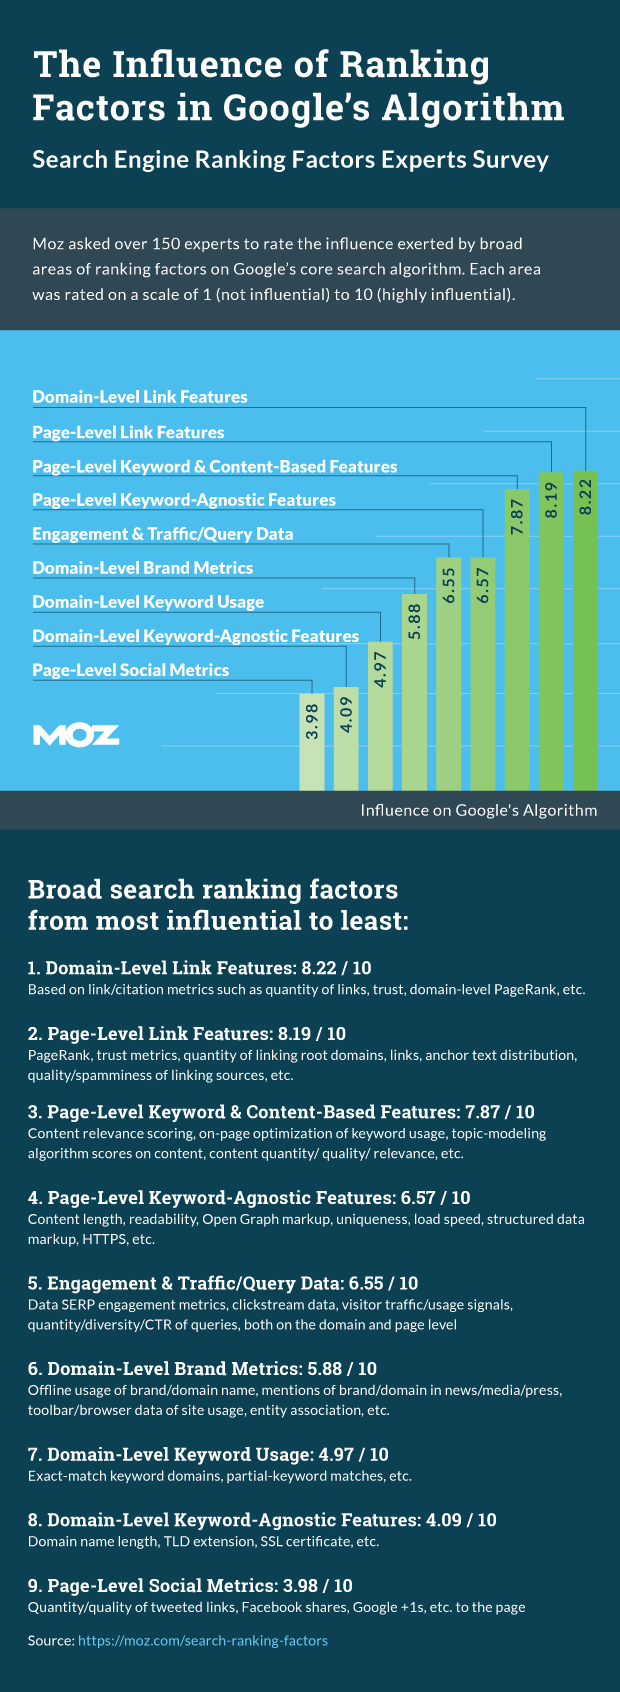 J.R. Atkins shares MOZ 2015 search faCTORS